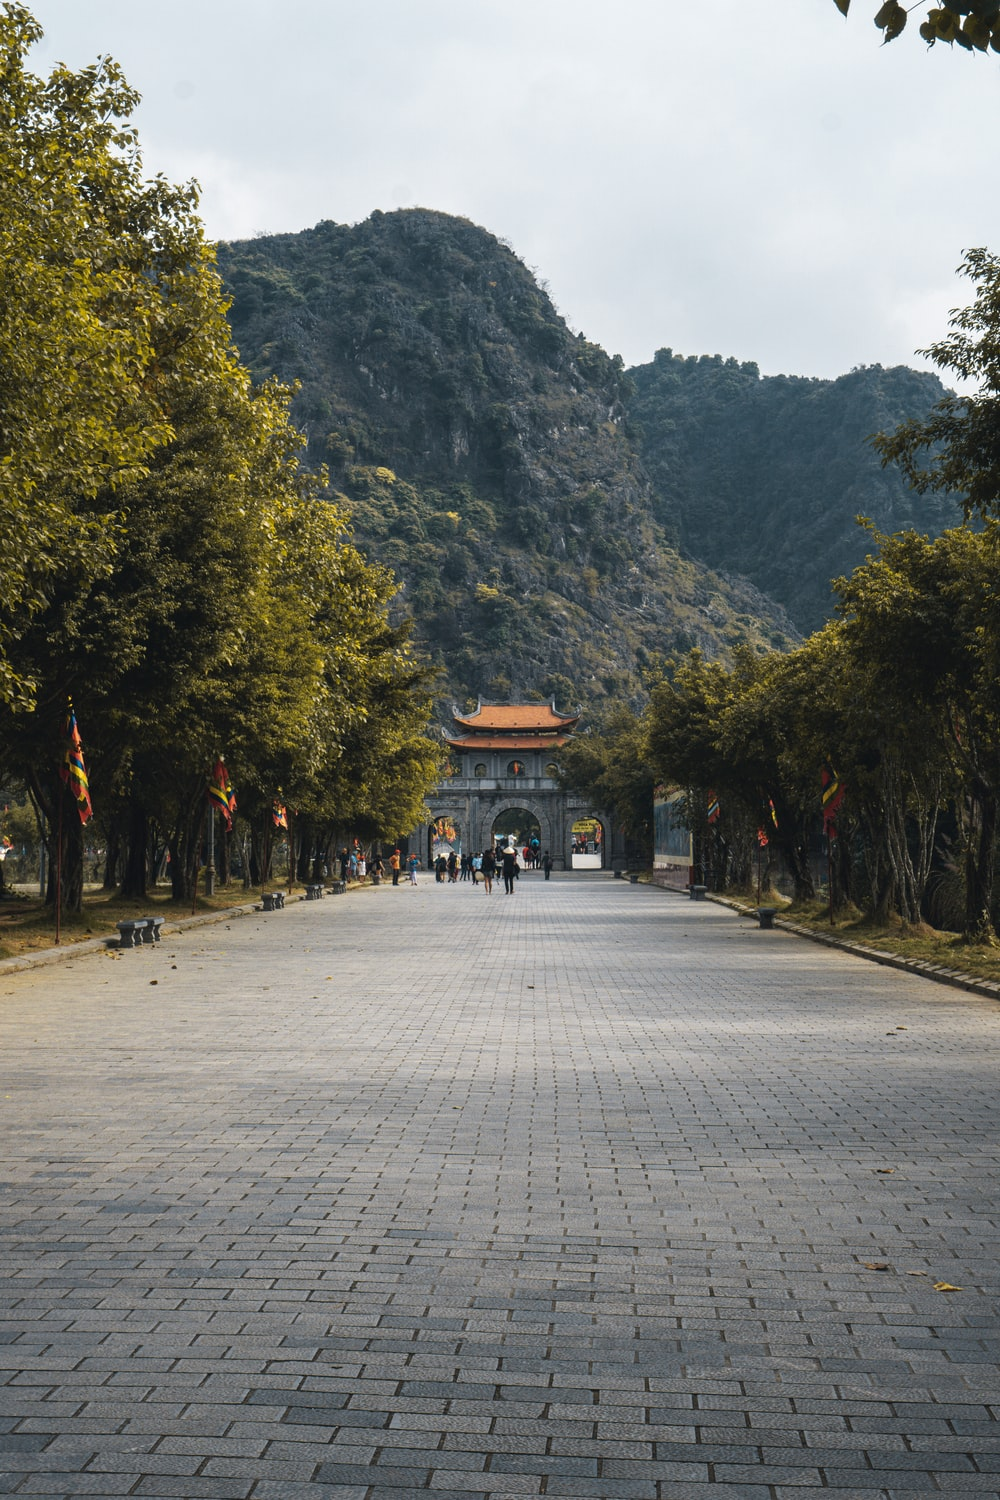 people walking on gray concrete road near green trees during daytime